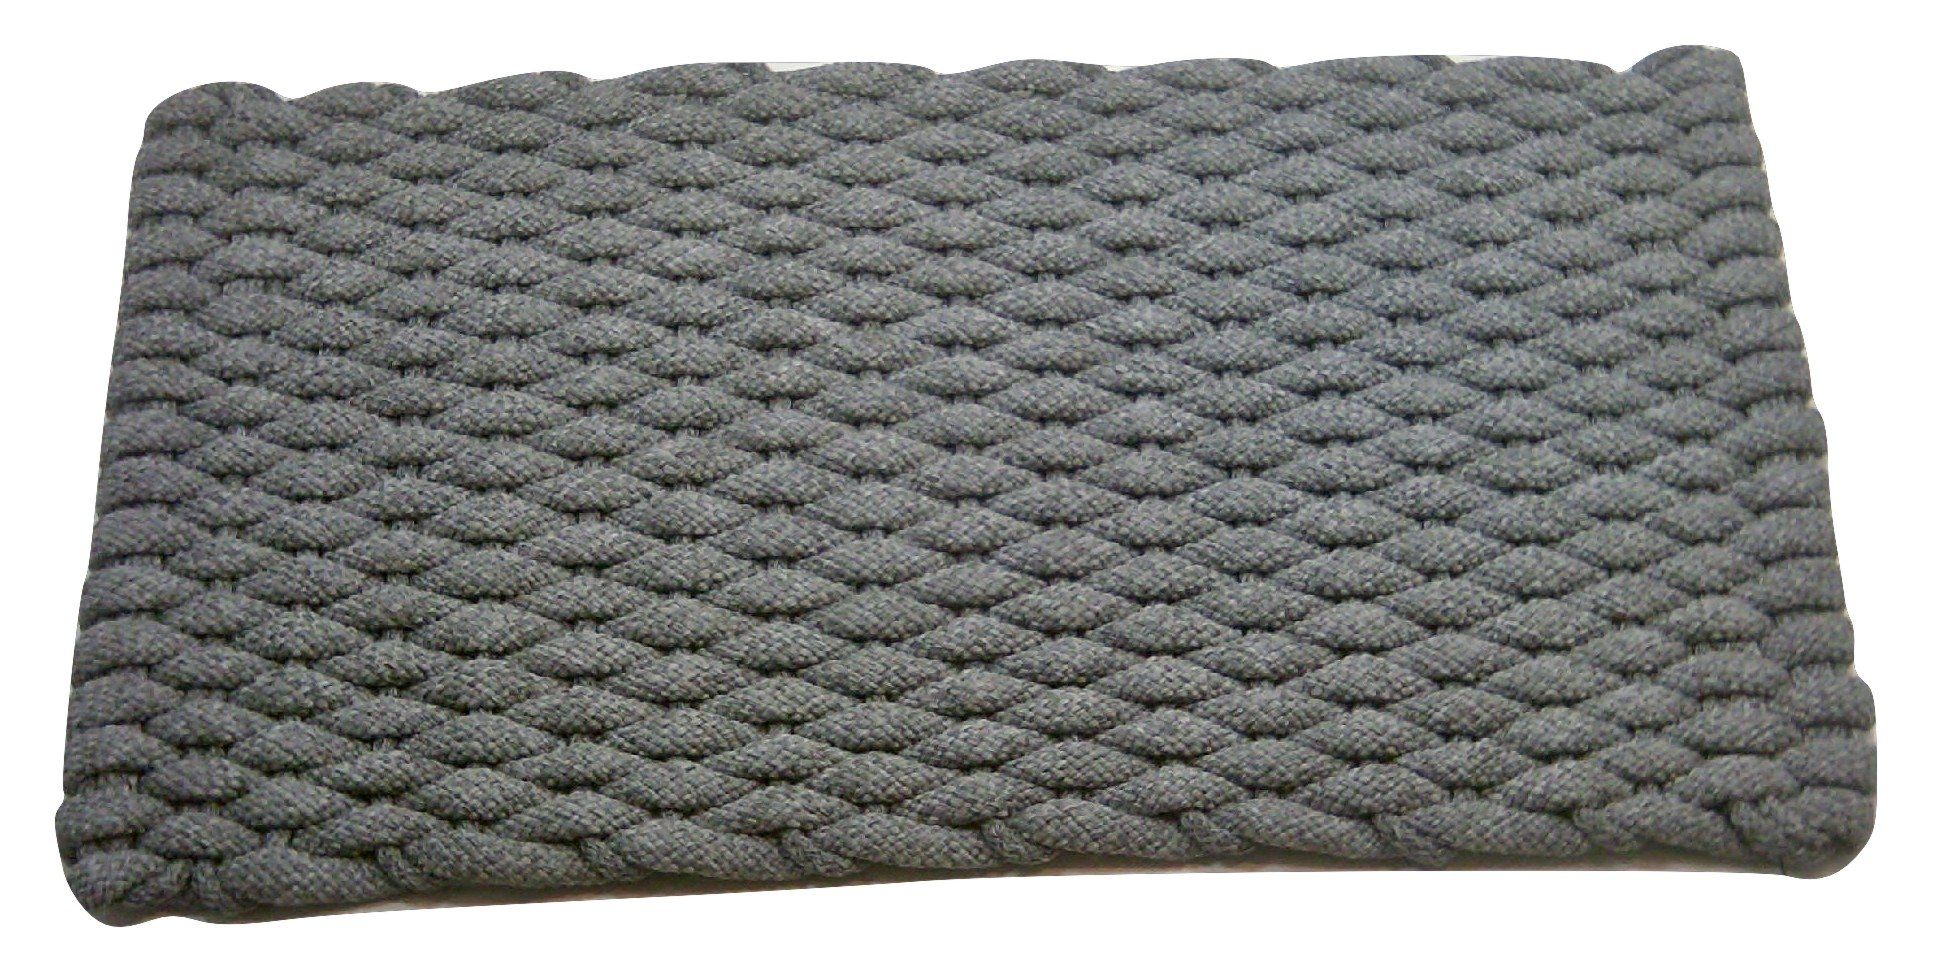 Rockport Rope 2438600 Super Duty Pet Mat, 24'' x 38'', Large, Gray